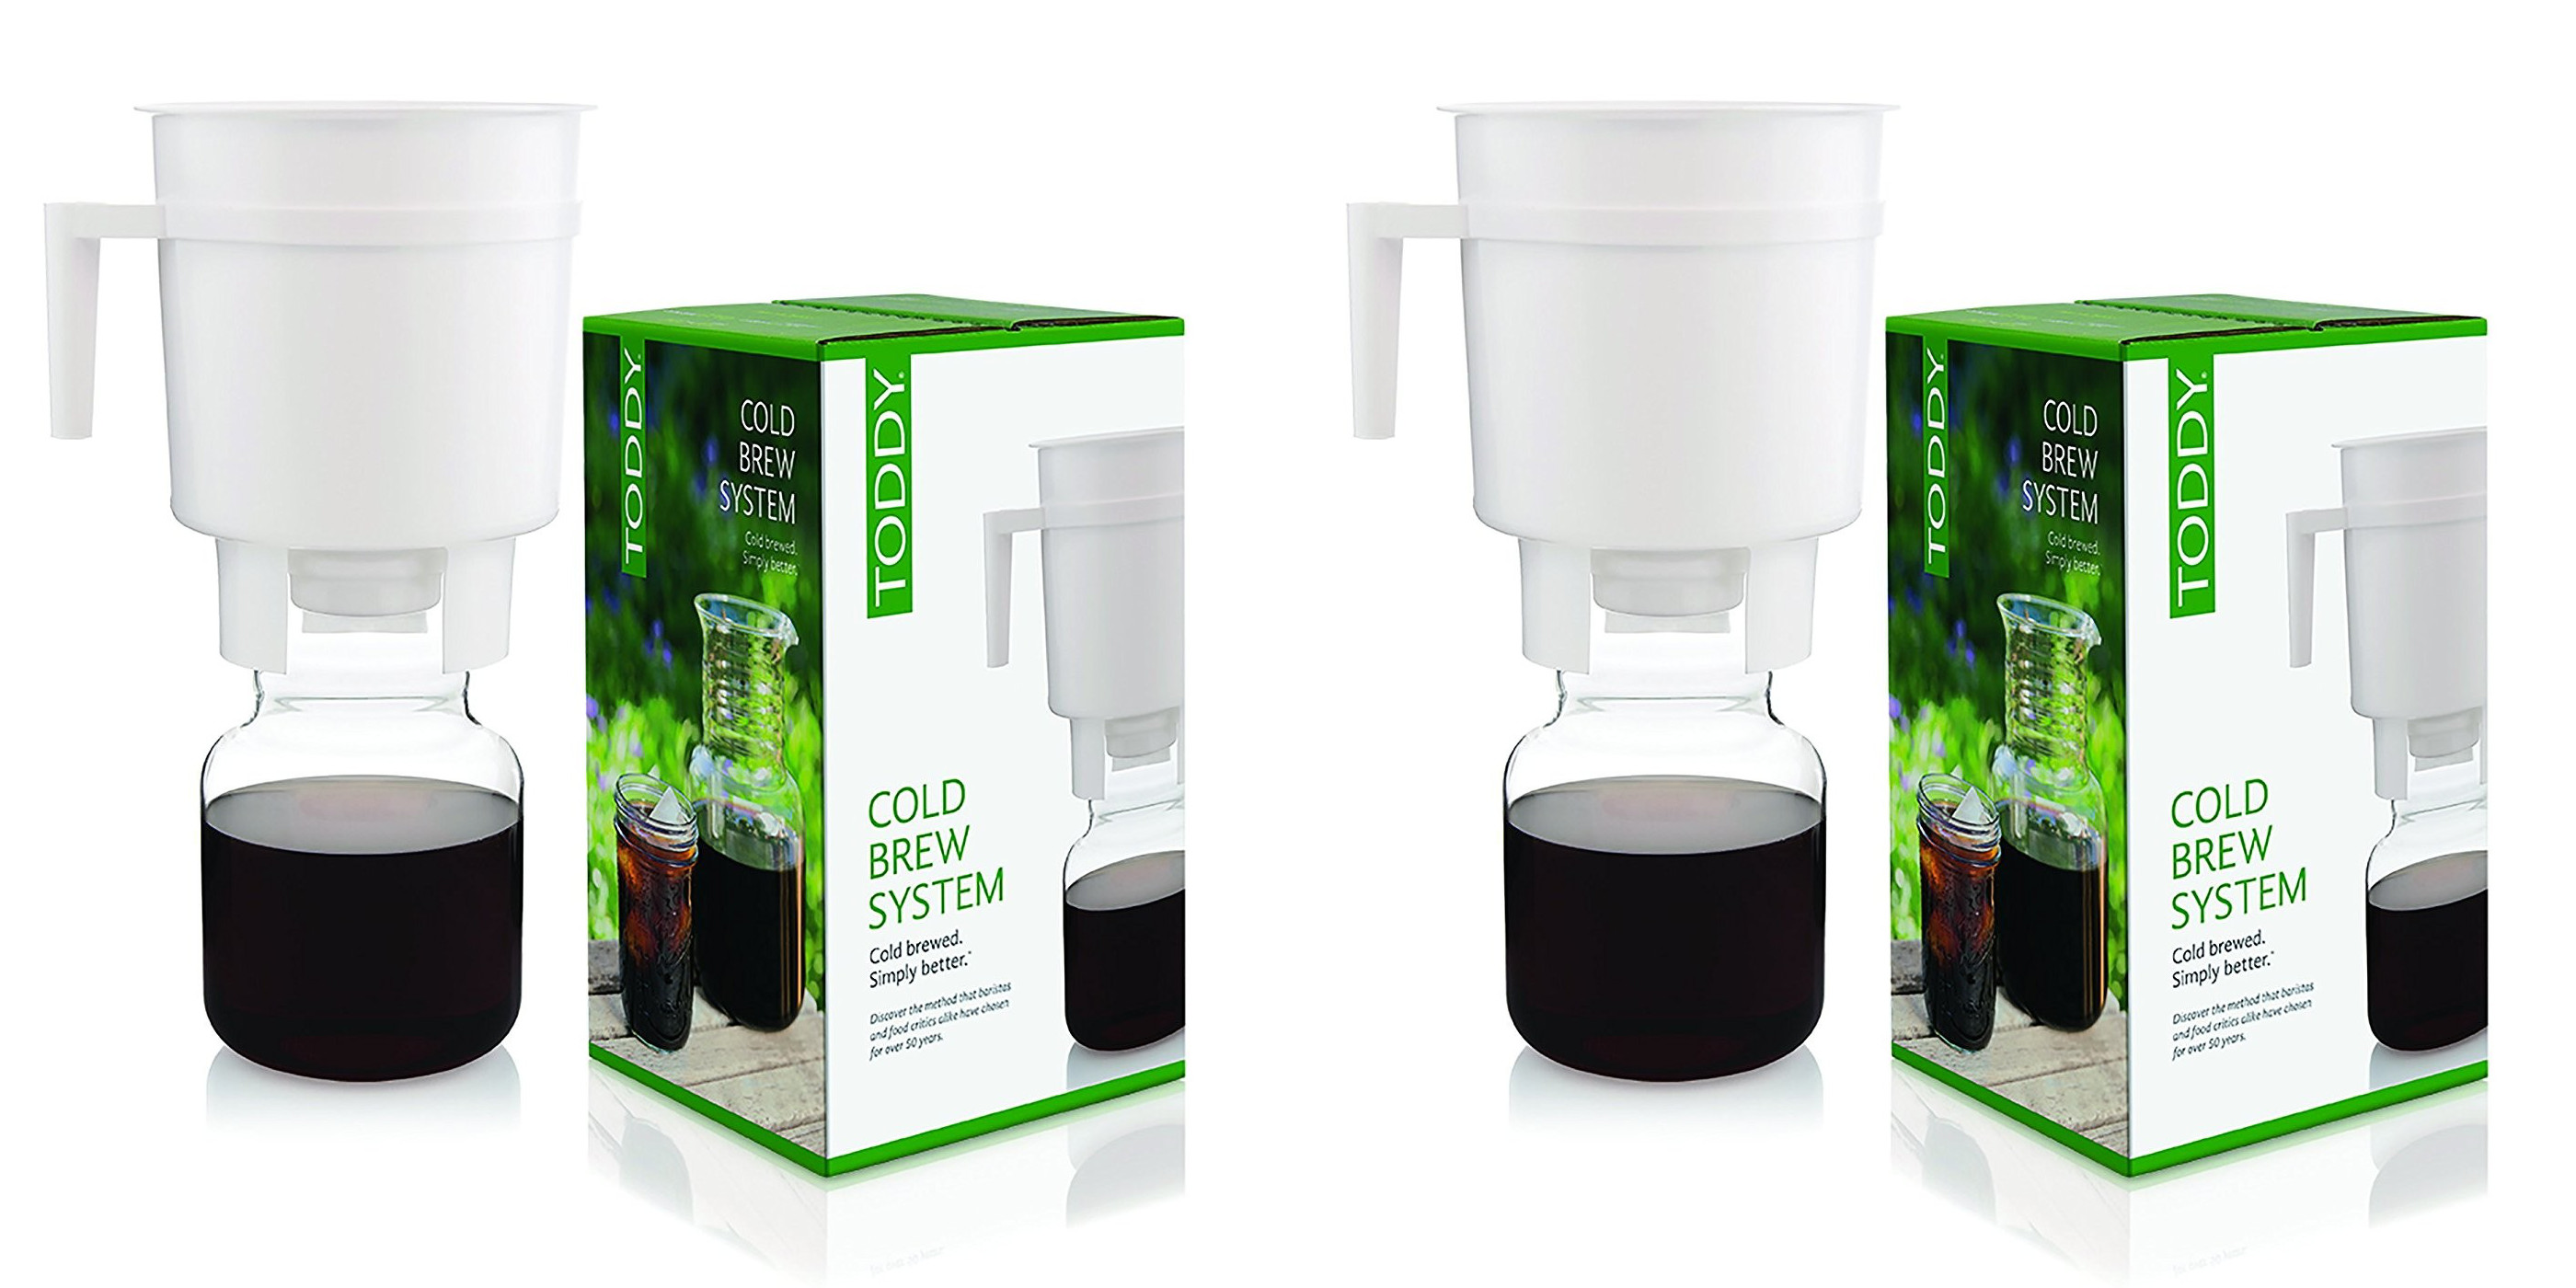 Toddy Cold/Hot Brew Pour-Over Coffee System hits Amazon low at $17.50 (Reg. $35)